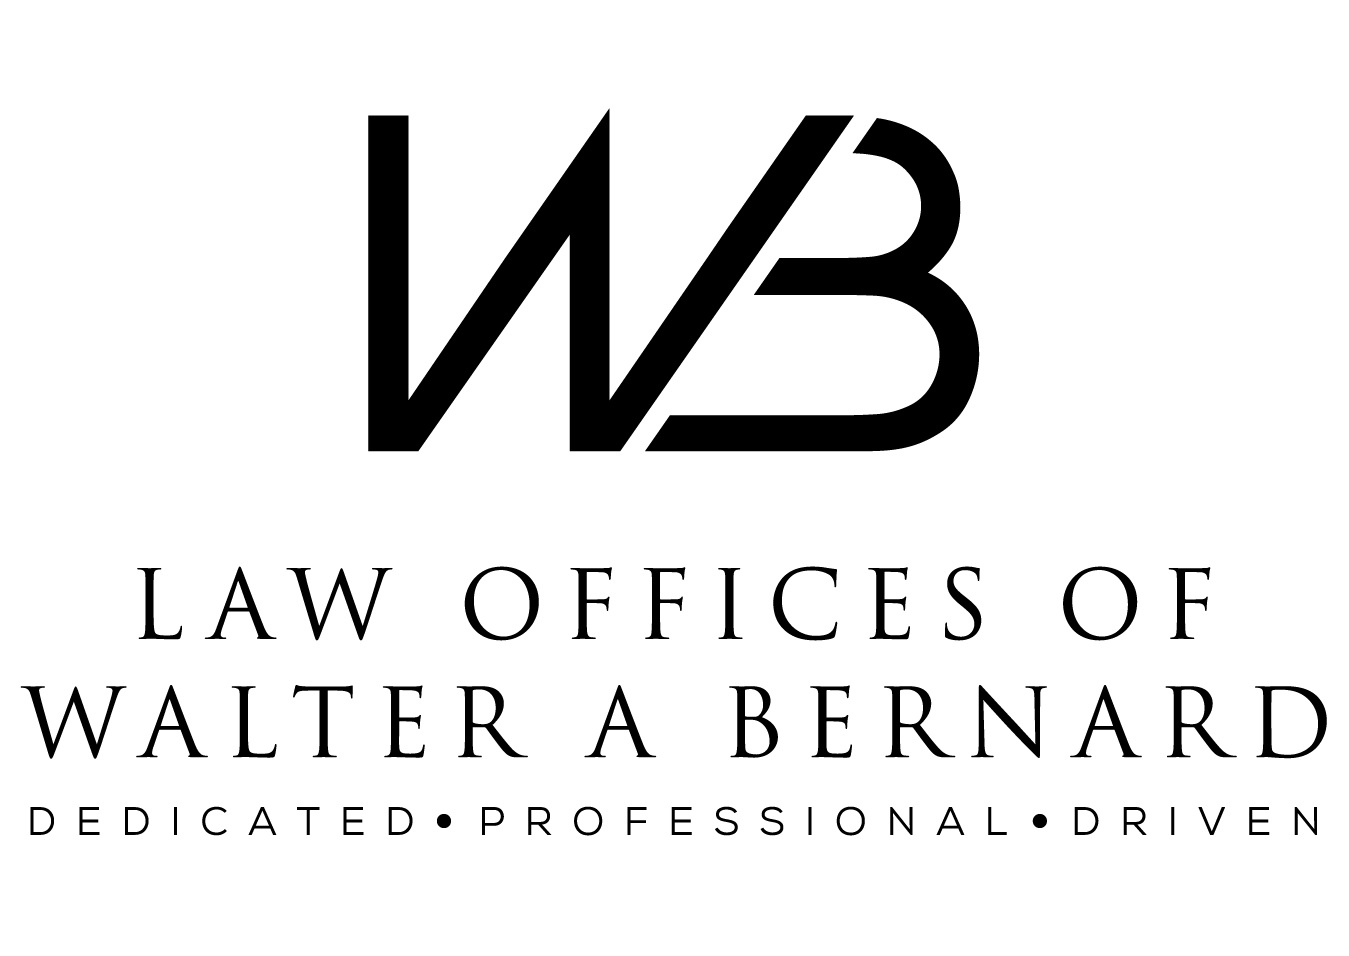 Law Offices of Walter A Bernard